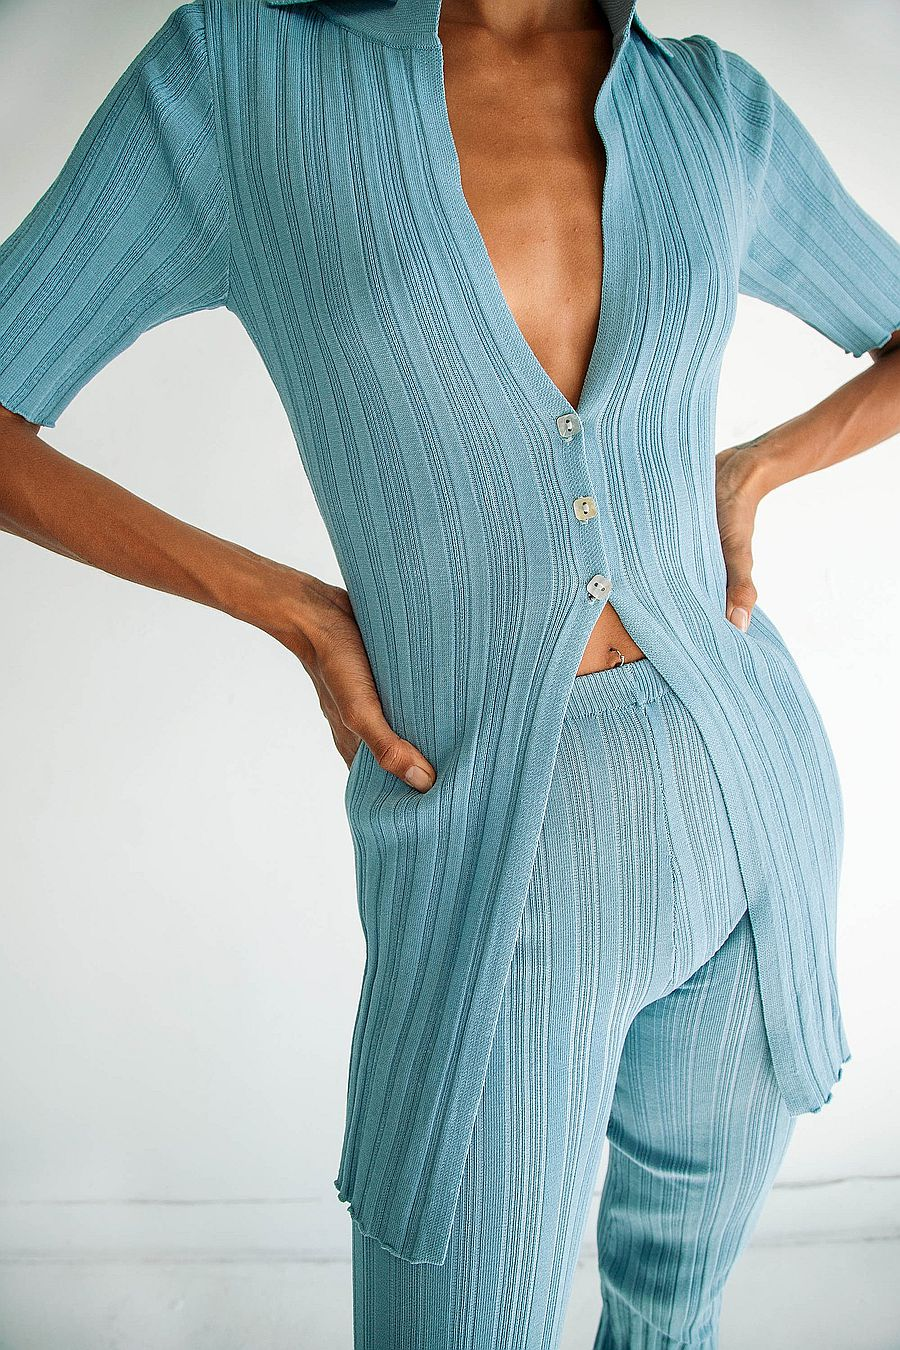 The Line by K Daisy Cardigan - Mineral blue